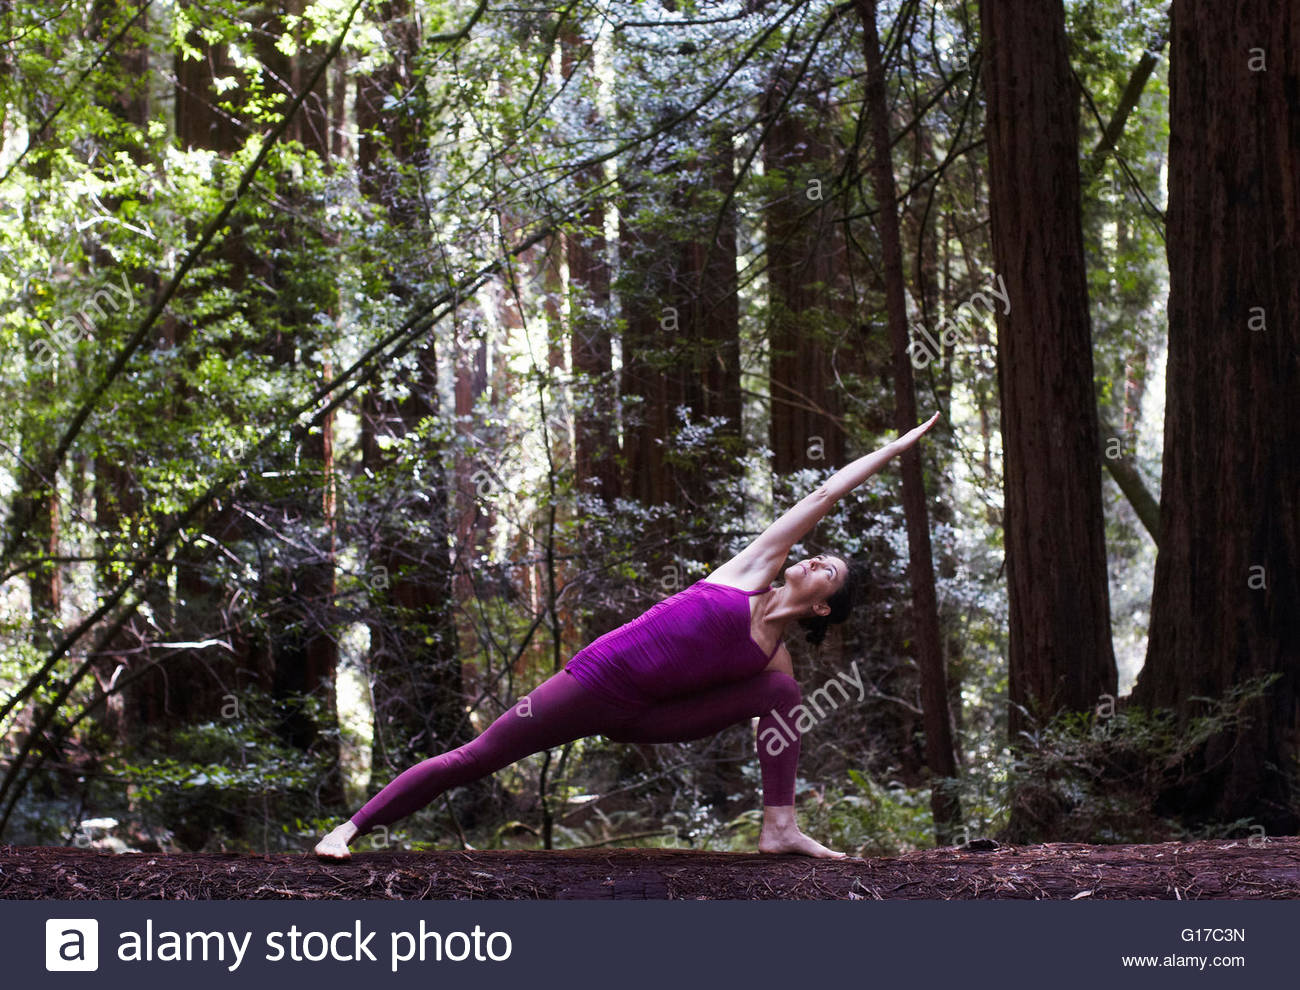 Mid adult woman doing yoga in forest, in extended side angle pose Stock Photo